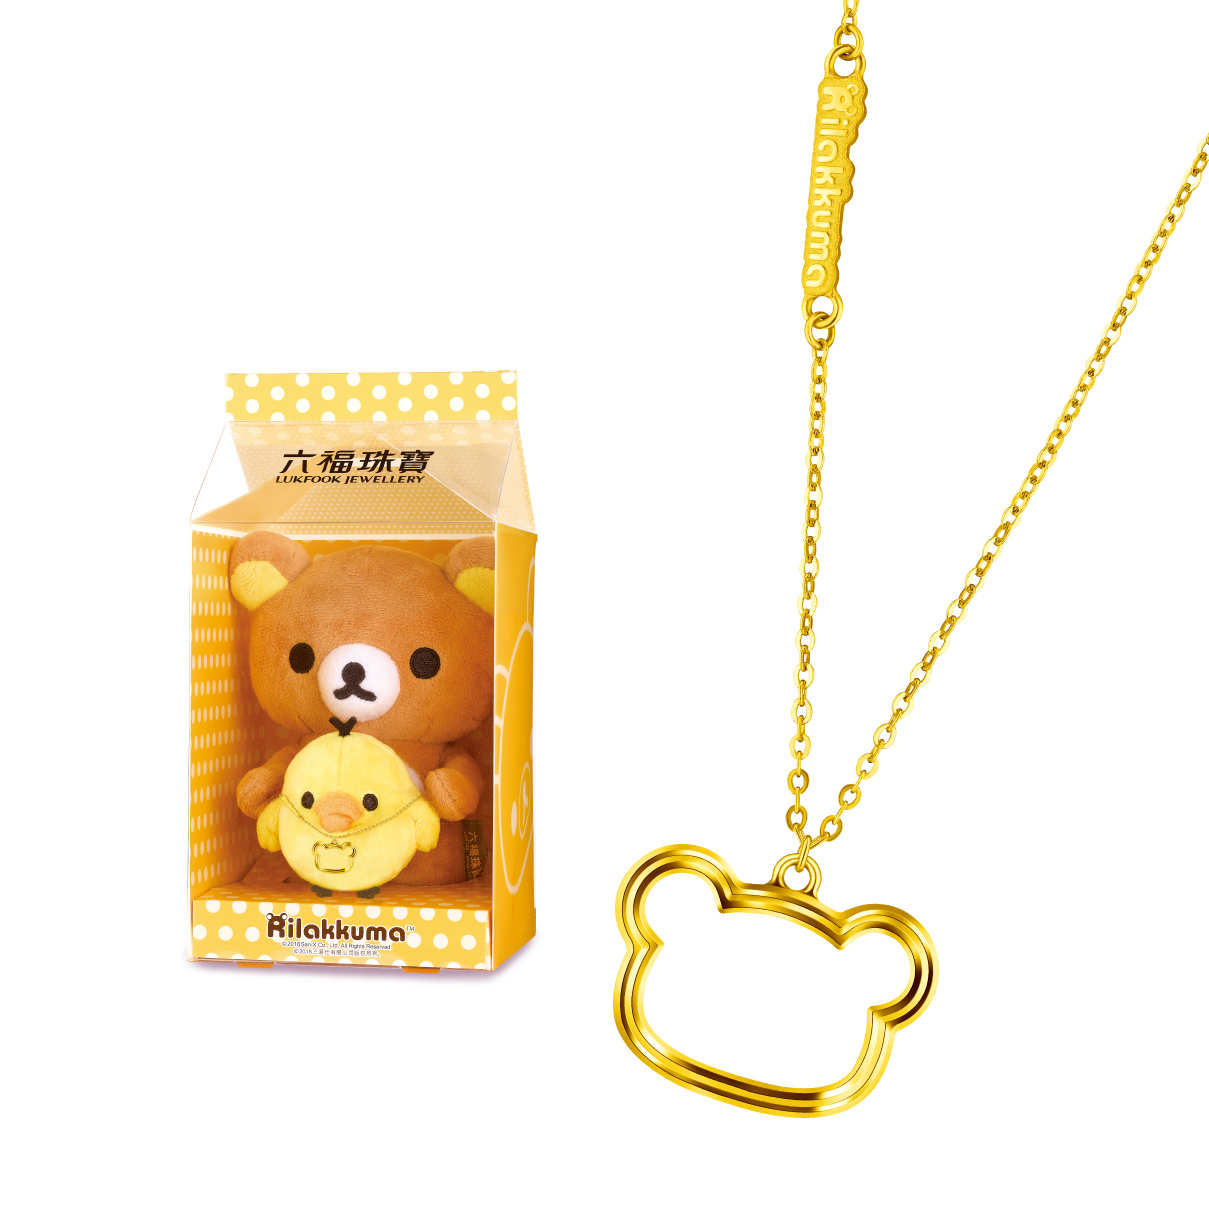 Rilakkuma™ Collection Light of Gold Necklace and Cashbox Gift Set